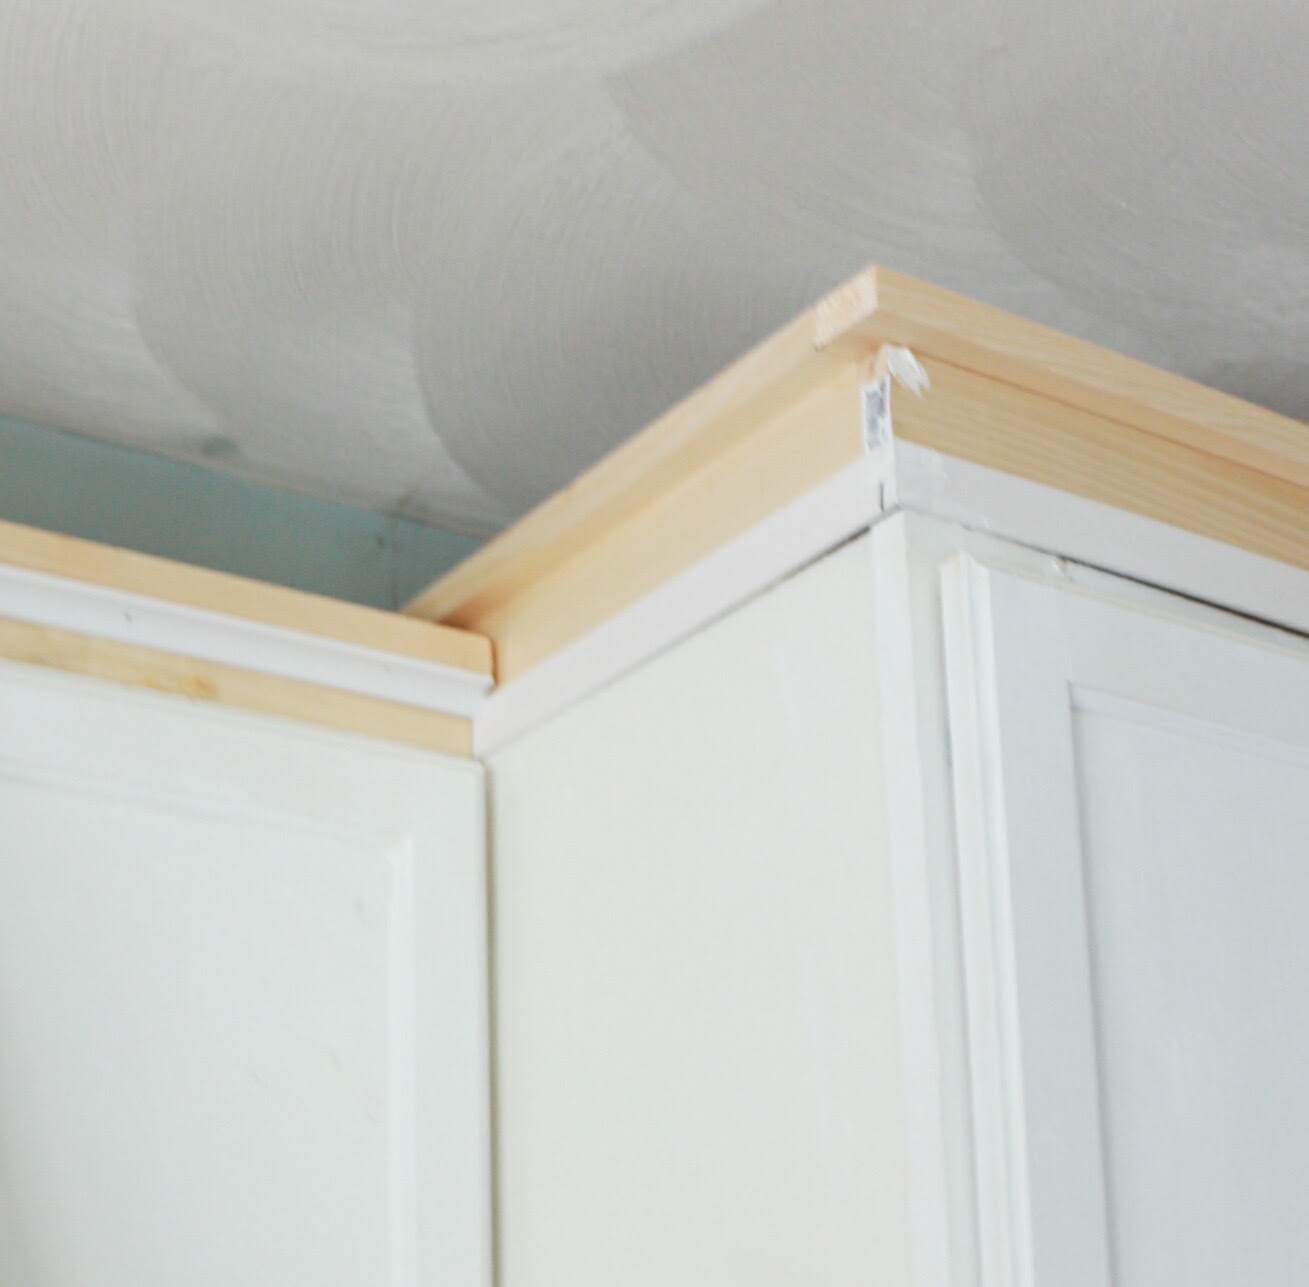 Made By Carli My Diy Kitchen Cabinet Crown Molding How To Fake The Look Without Fuss